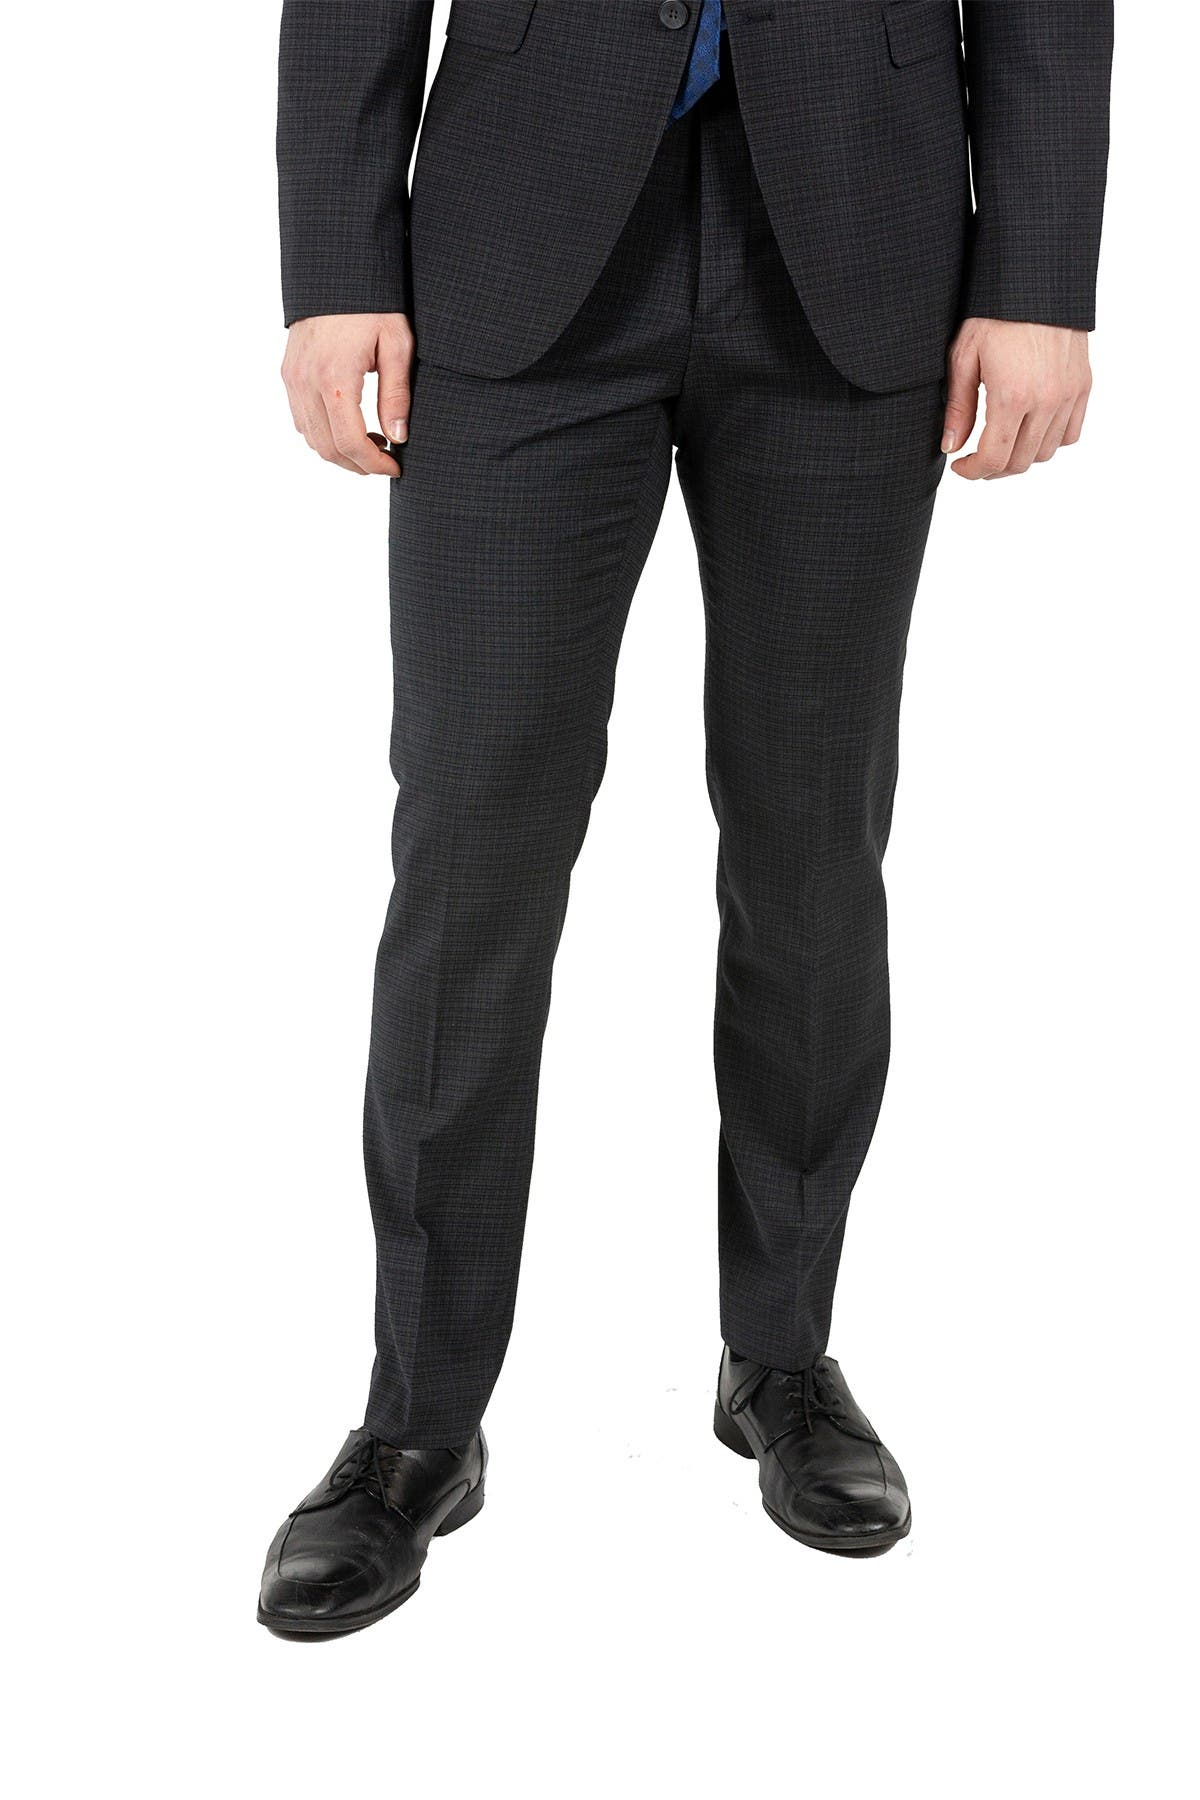 Image of Original Penguin Black Sharkskin Slim Fit Wool Blend Suit Separates Trousers